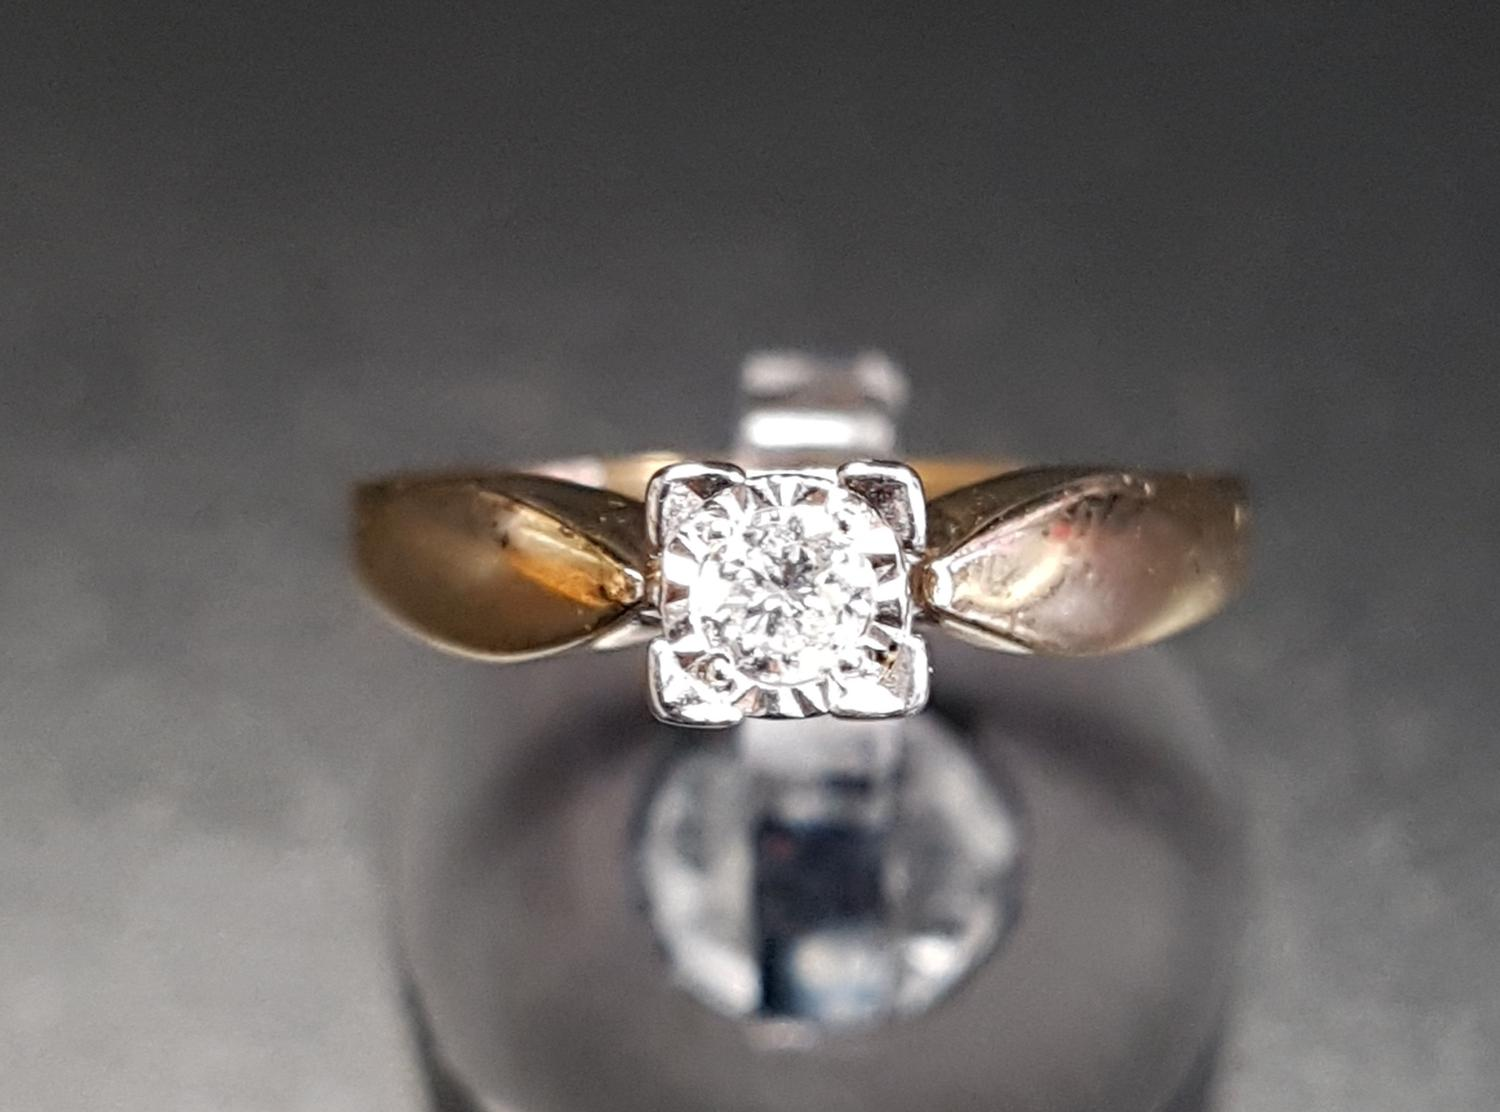 Lot 14 - DIAMOND SOLITAIRE RING the illusion set round brilliant cut diamond approximately 0.12cts, on nine